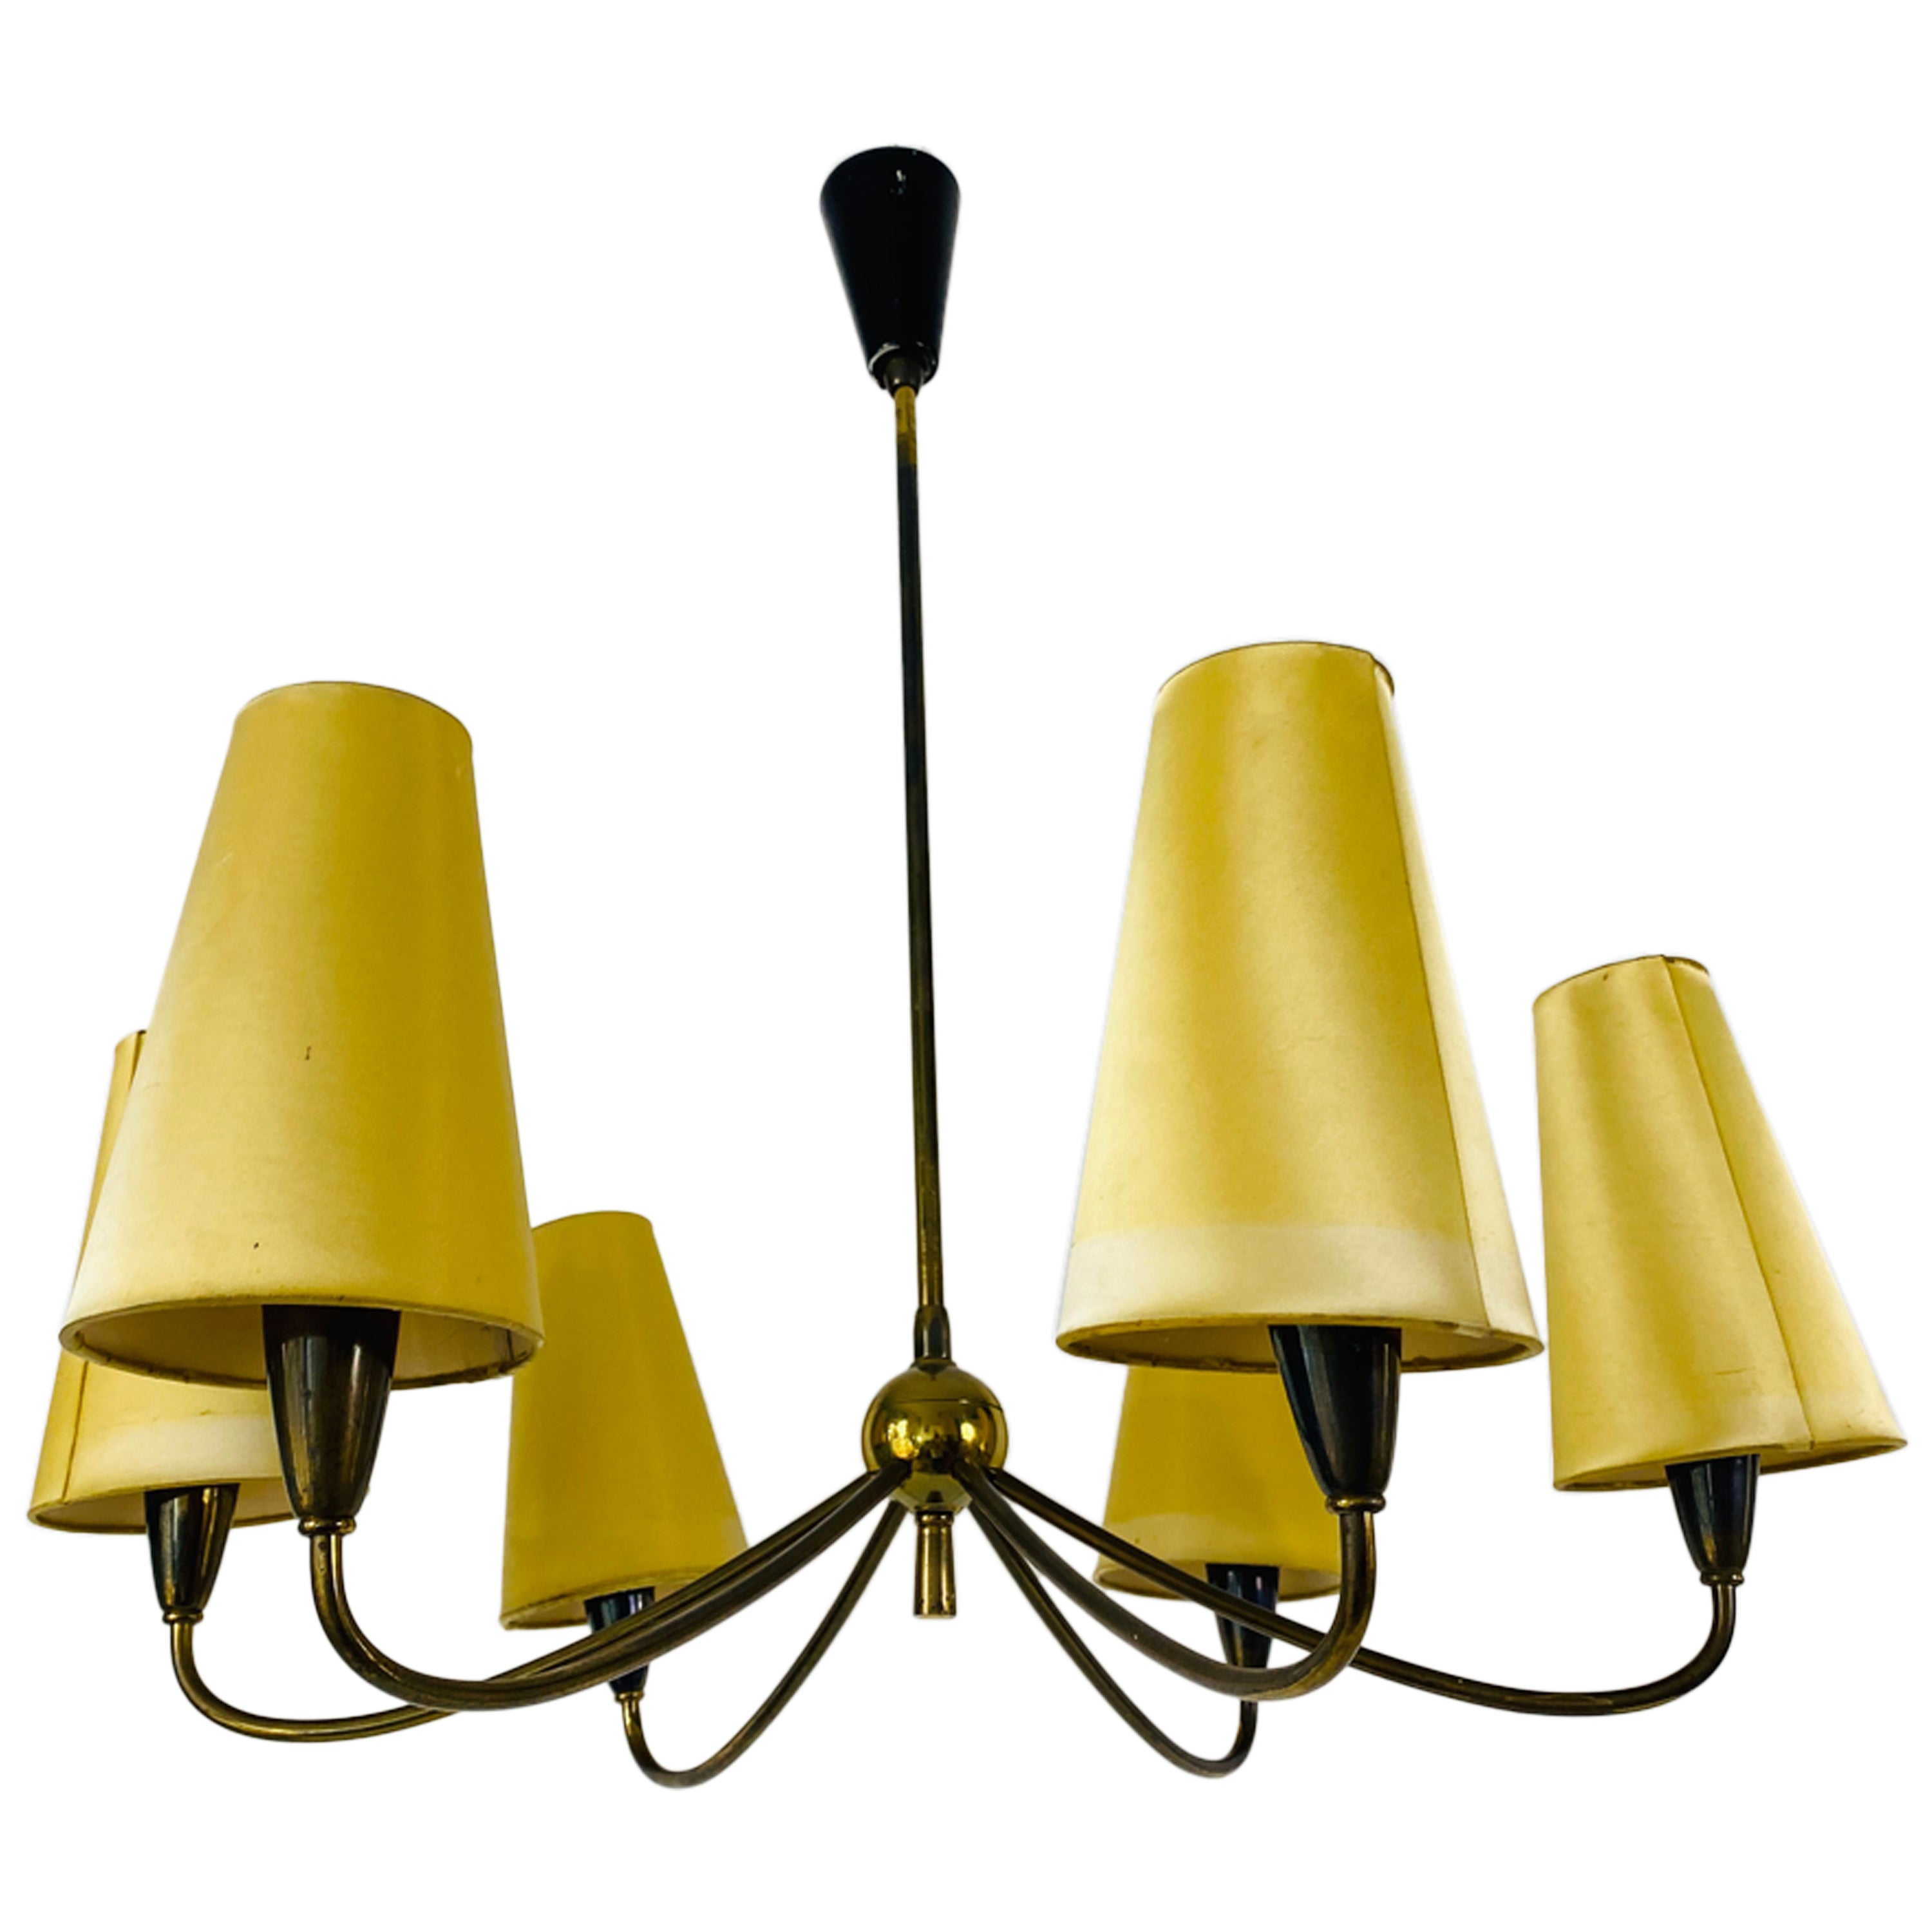 Midcentury Chandelier by Maison Lunel, 1950s